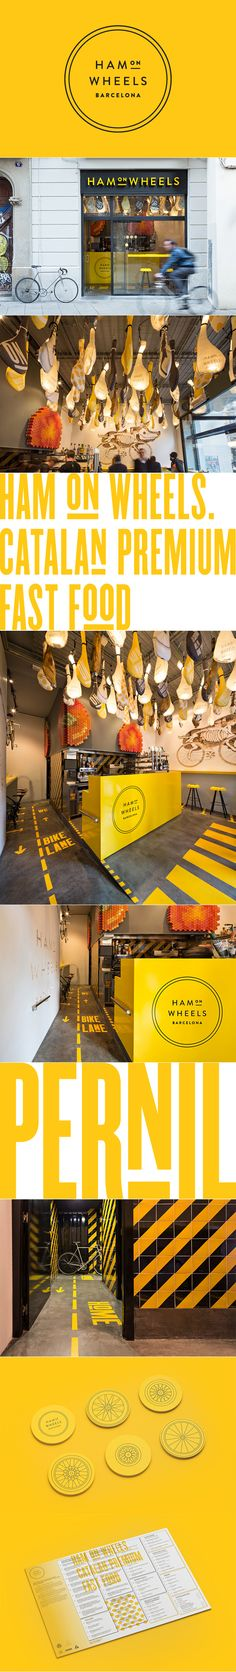 Ham on Wheels brand by Forma & Co